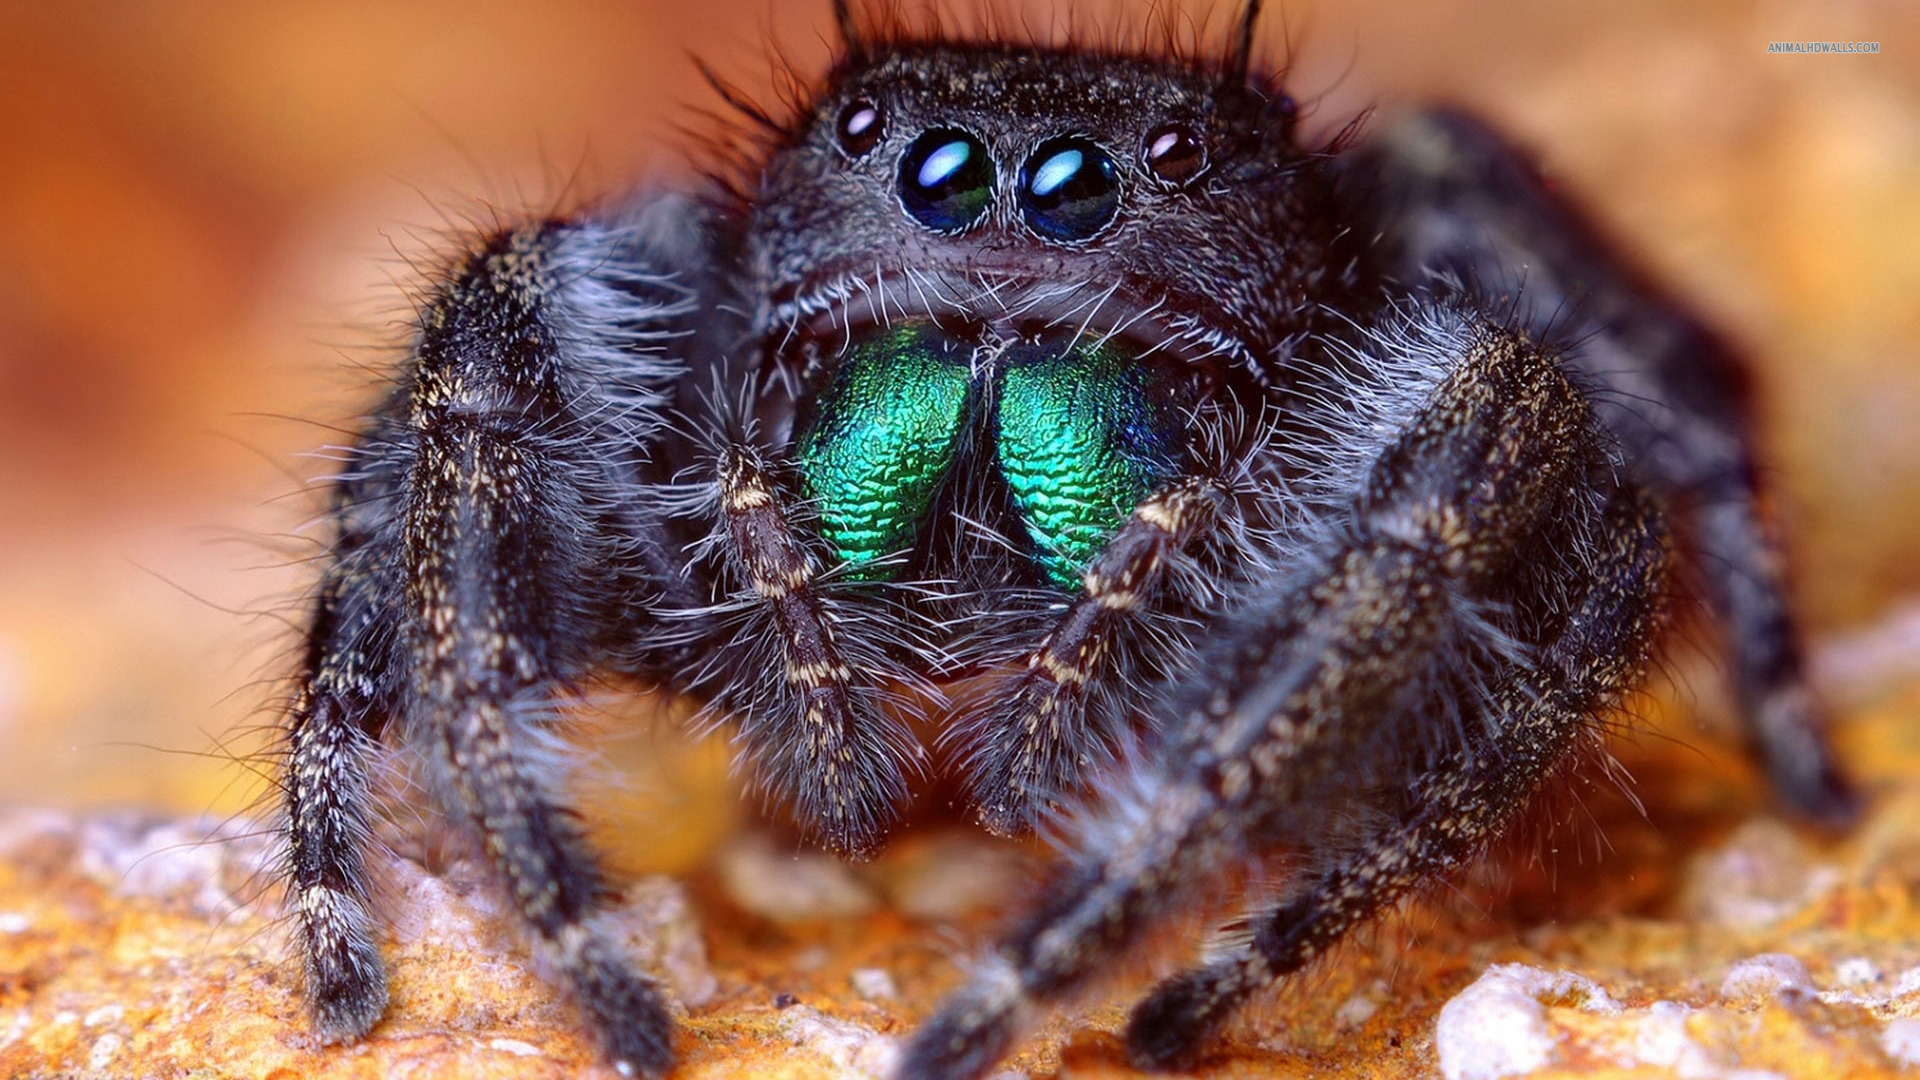 Jumping spider wallpaper 1920x1080